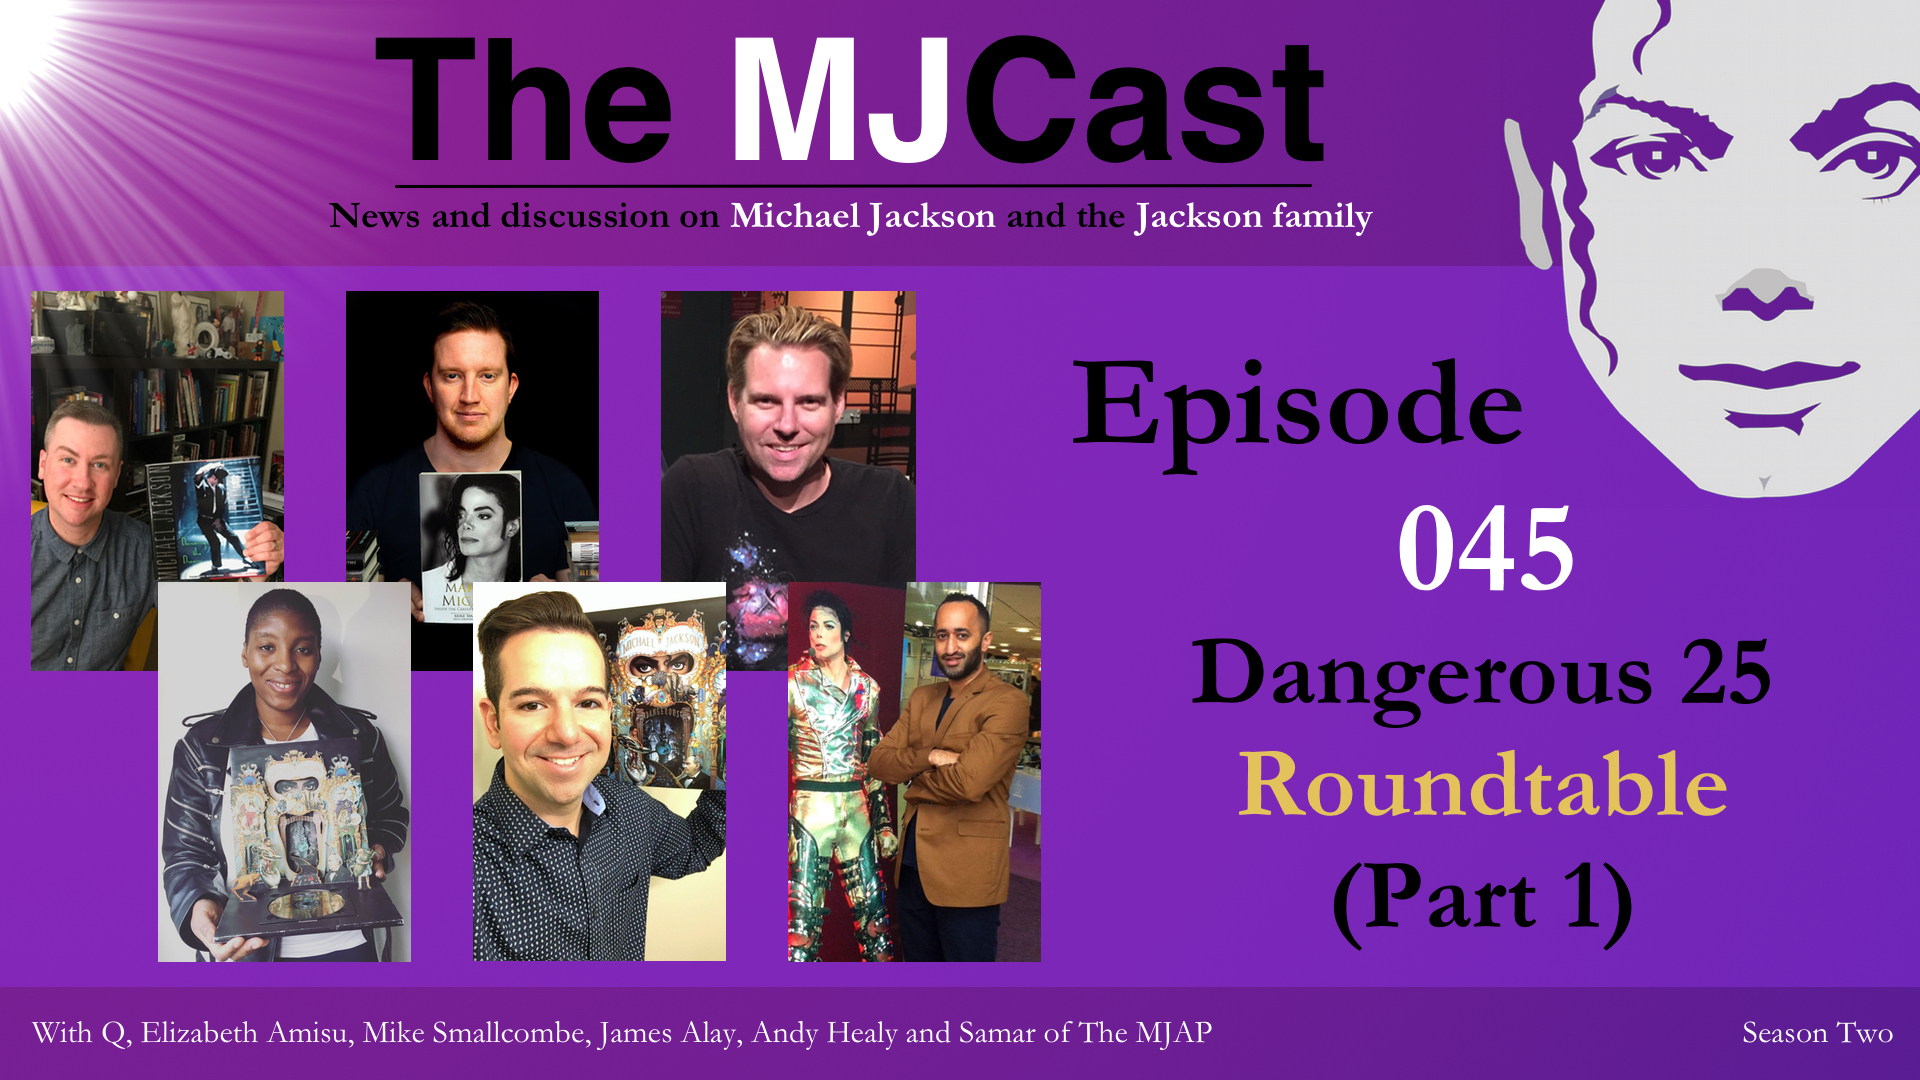 episode-045-dangerous-25-roundtable-part-1-show-art